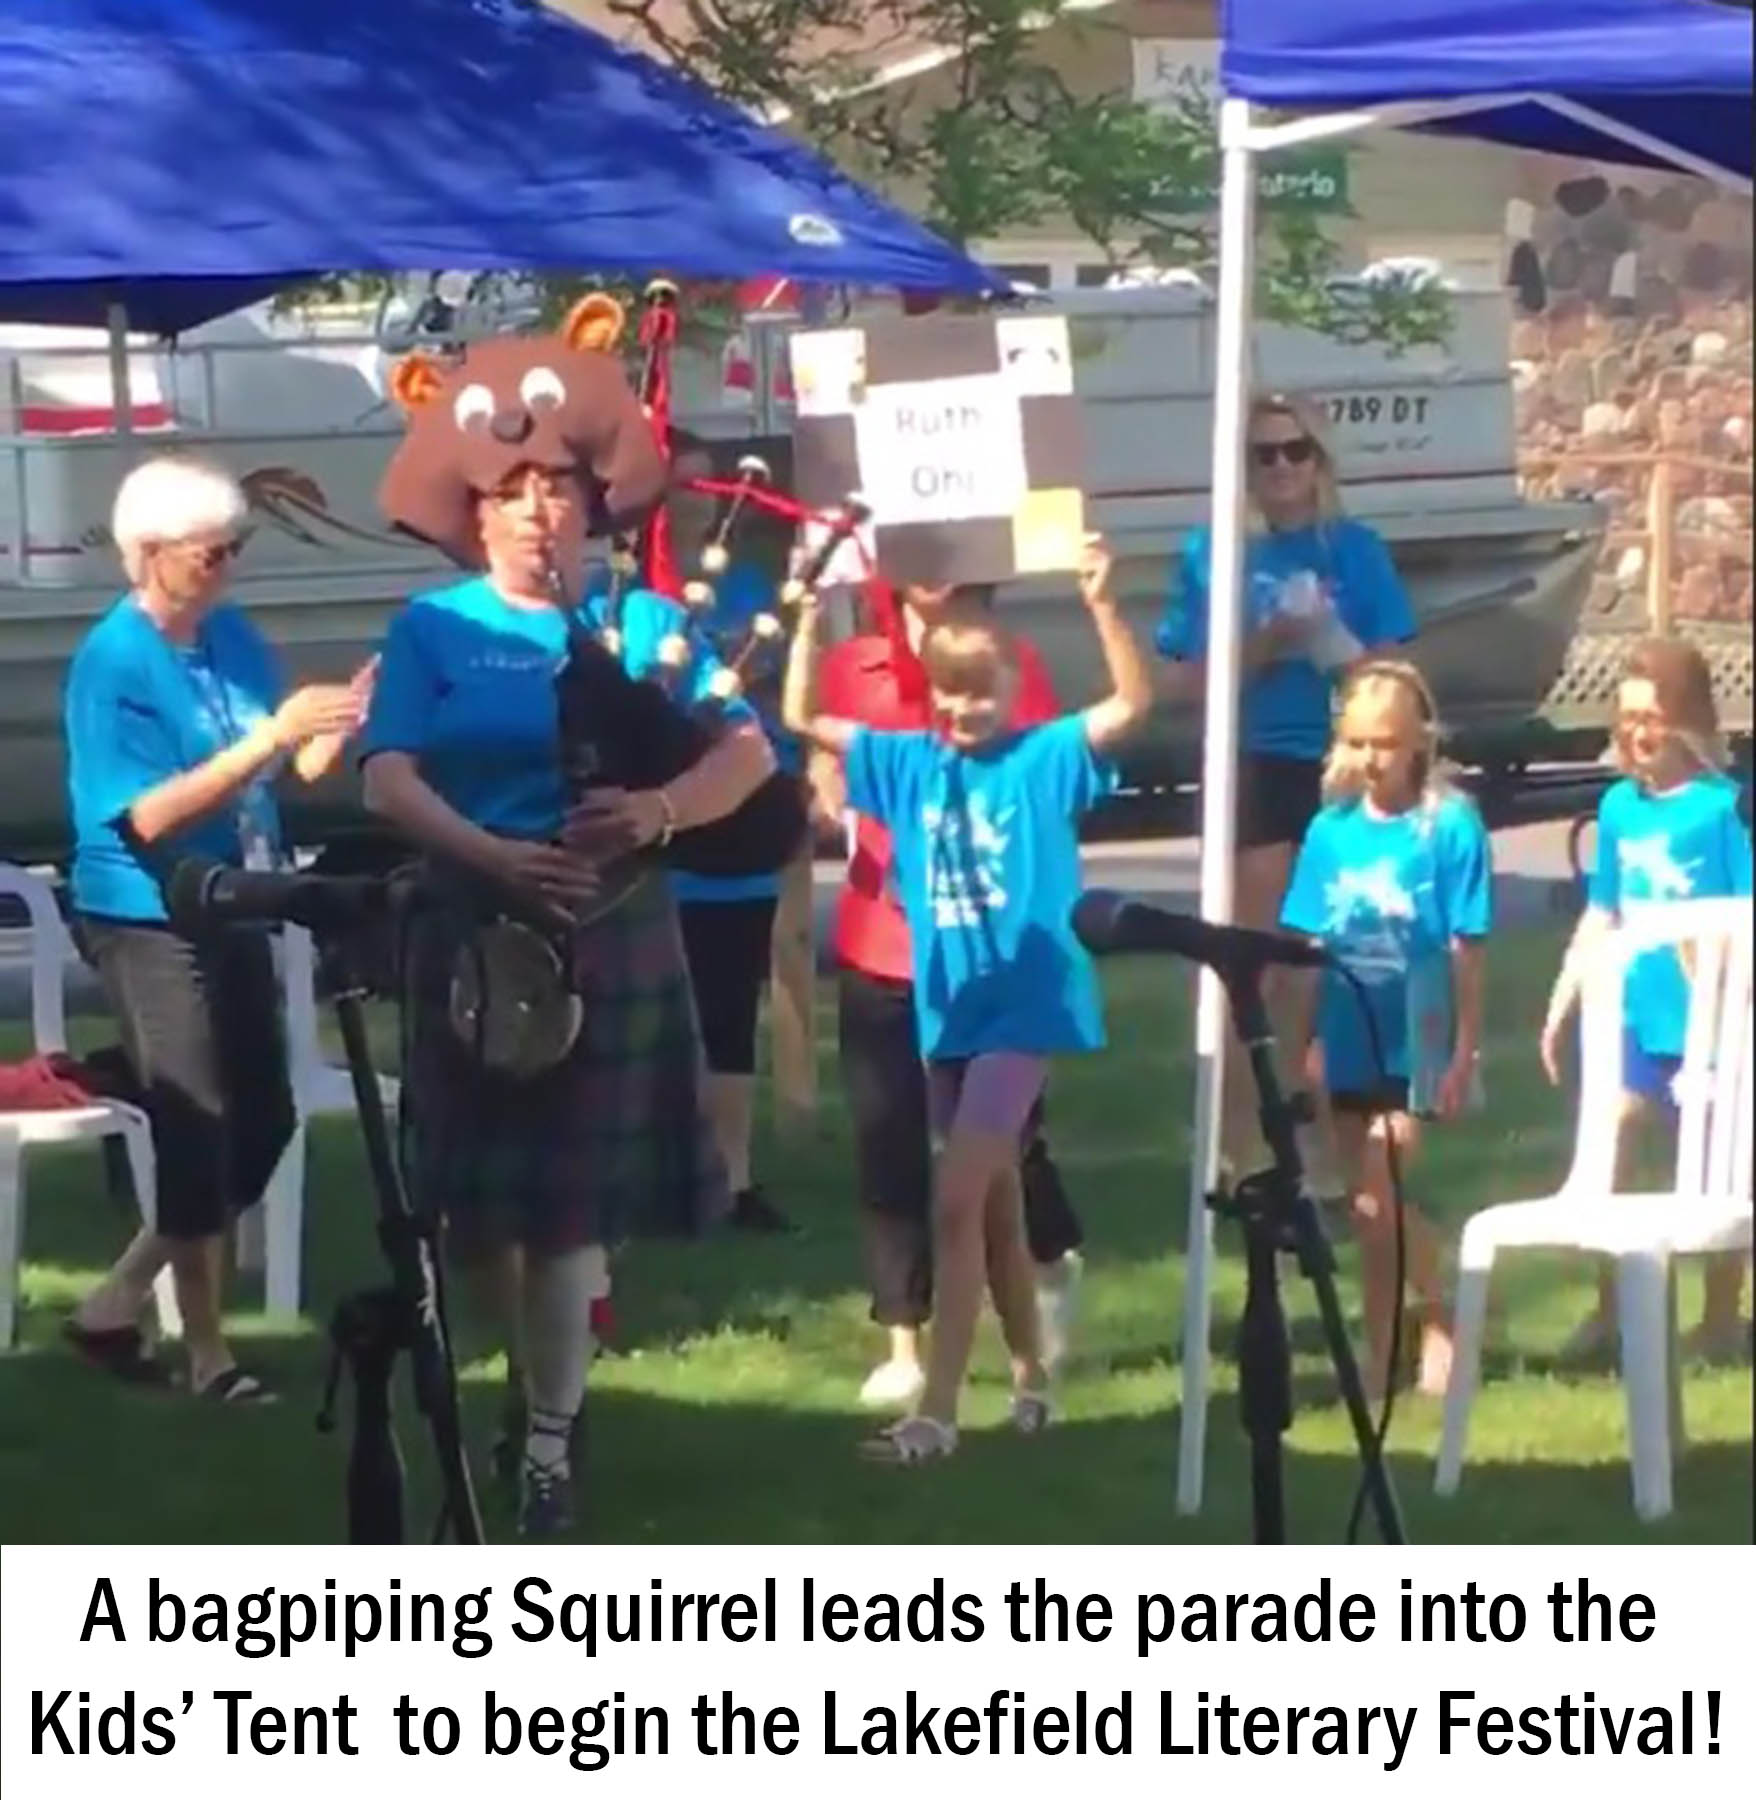 904 dpiBagpiping squirrel crop w text.jpg